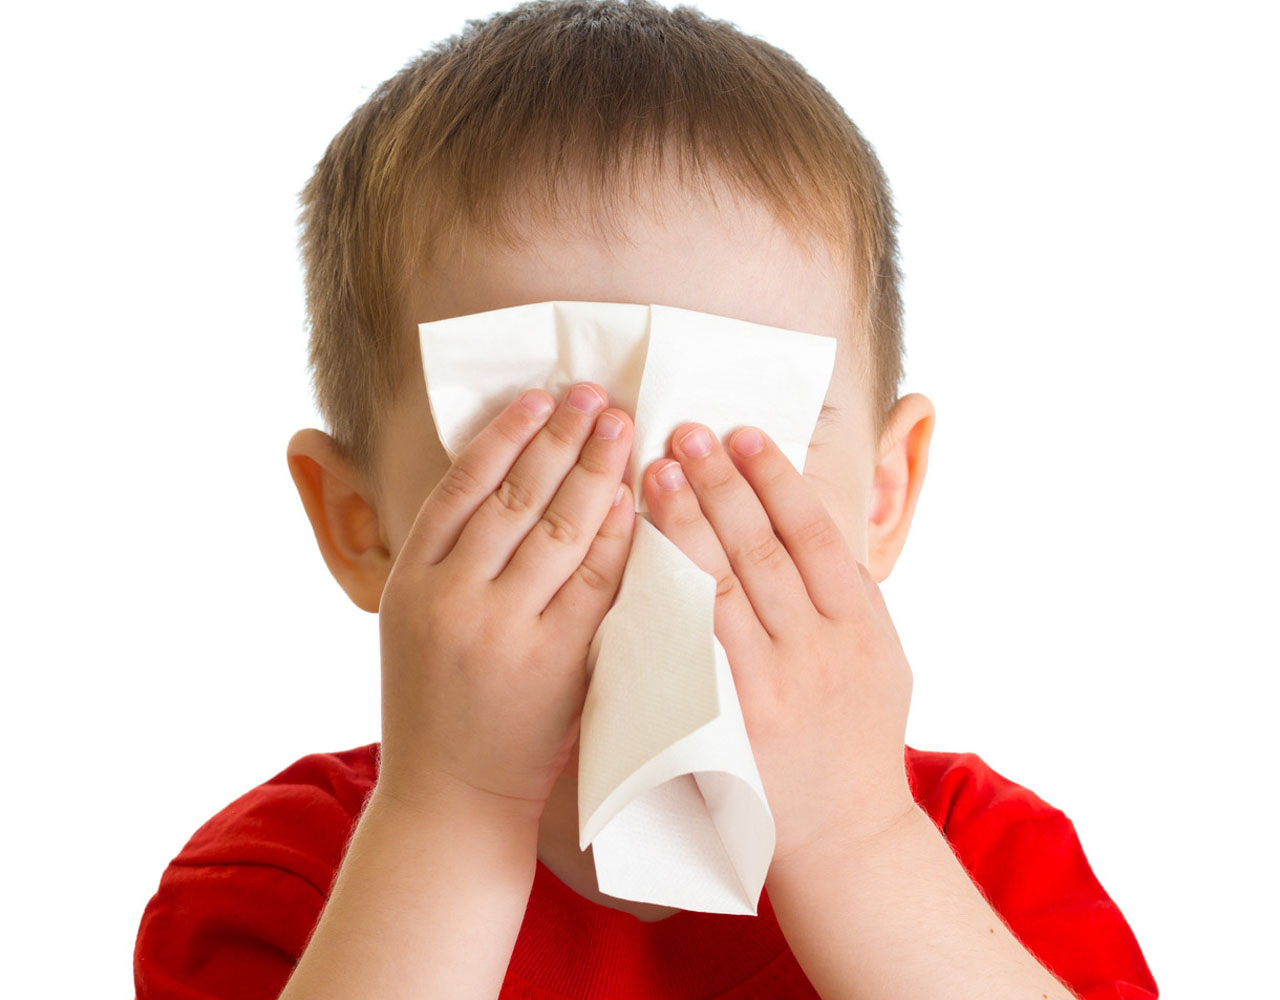 child-nose-wiping-with-tissue-2